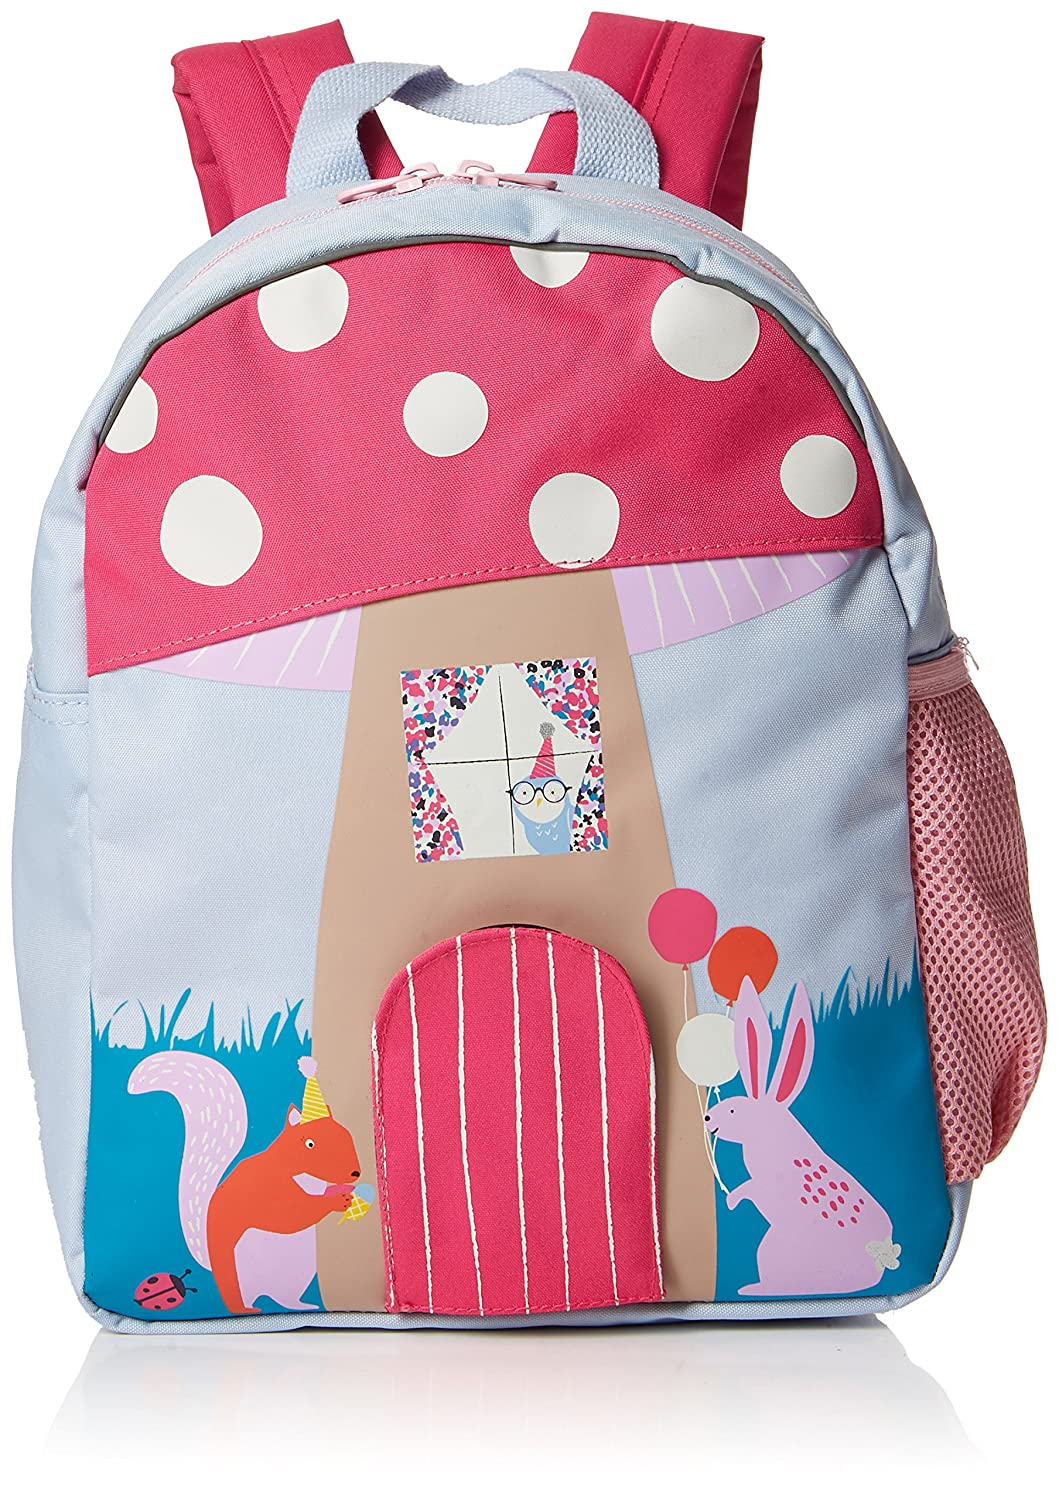 Joules Zippy Back - Billetera Niñas Z_JZIPPYBKB